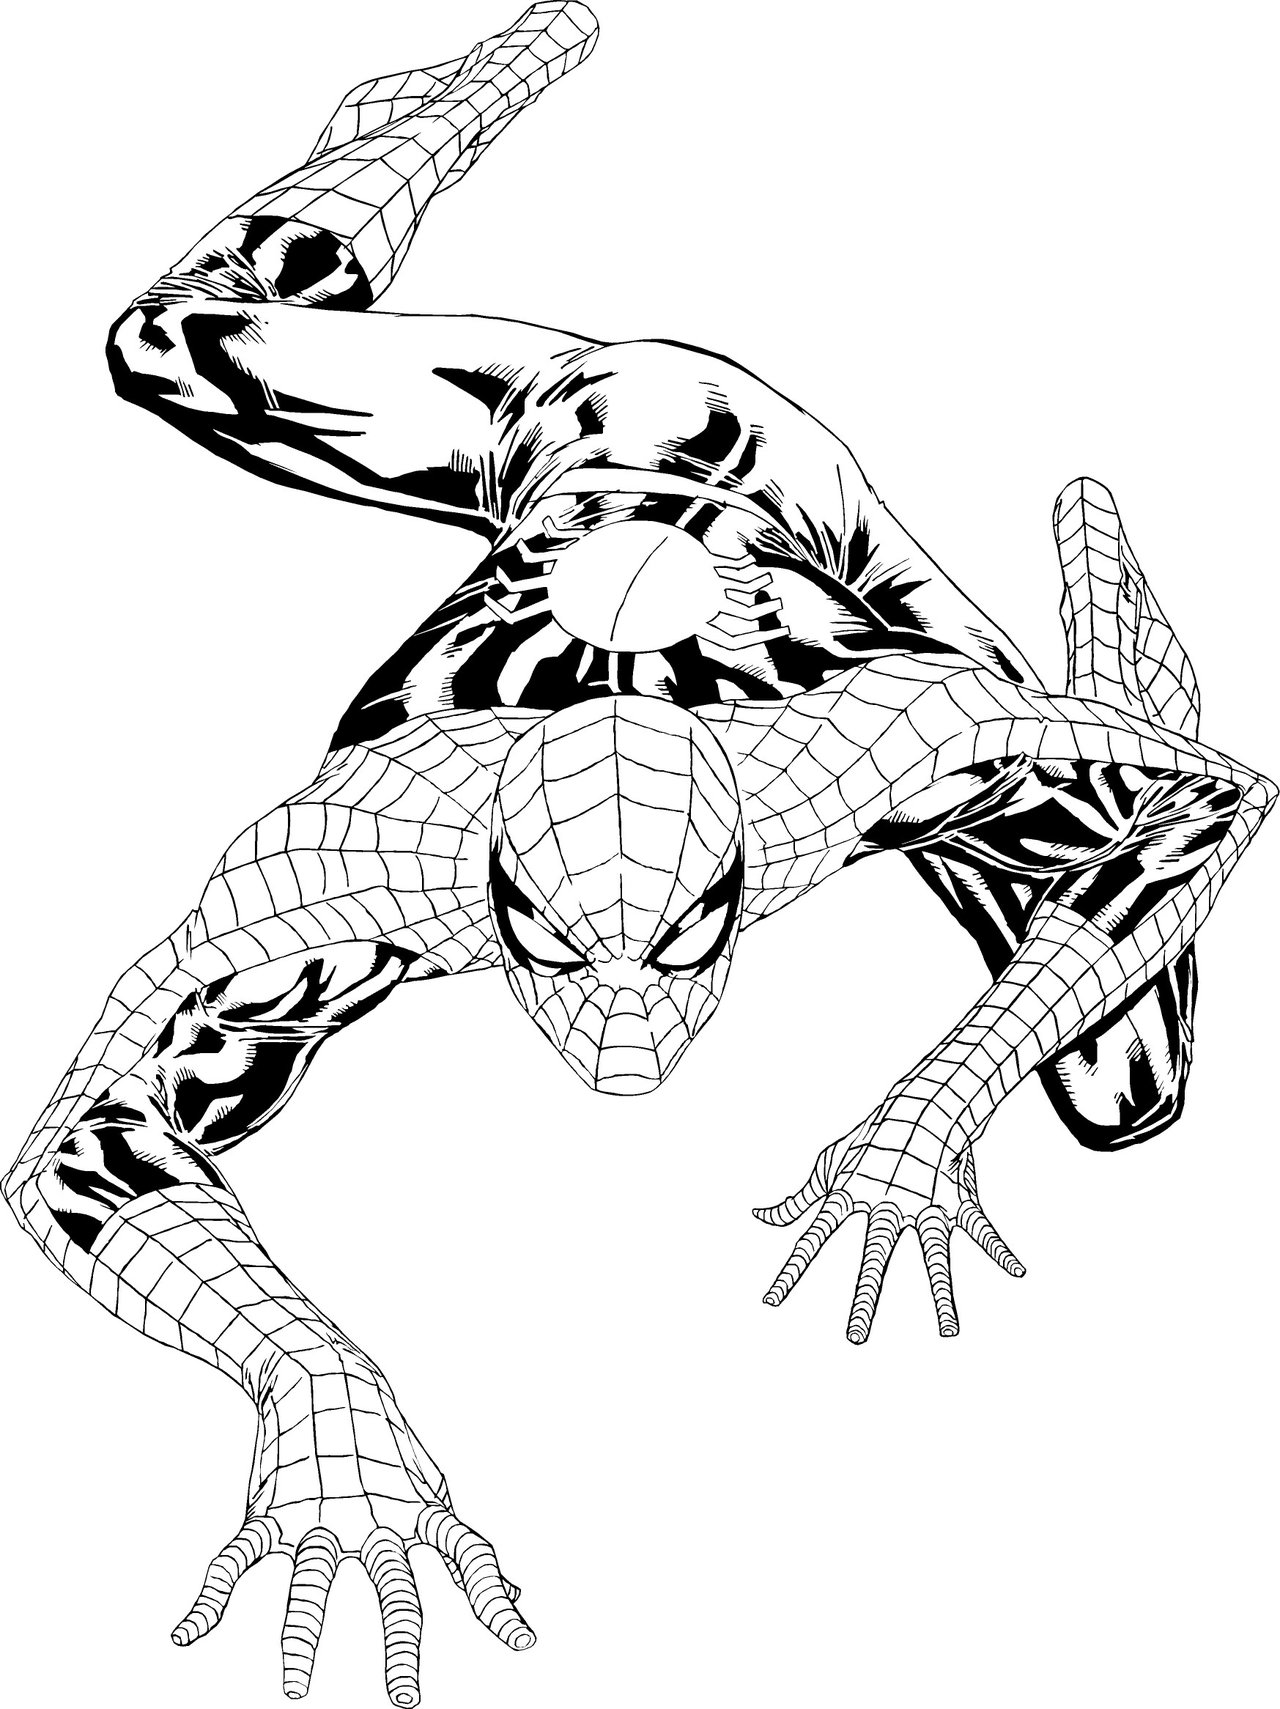 Spider Man Printable Coloring Pages further ic Book Coloring Pages ...